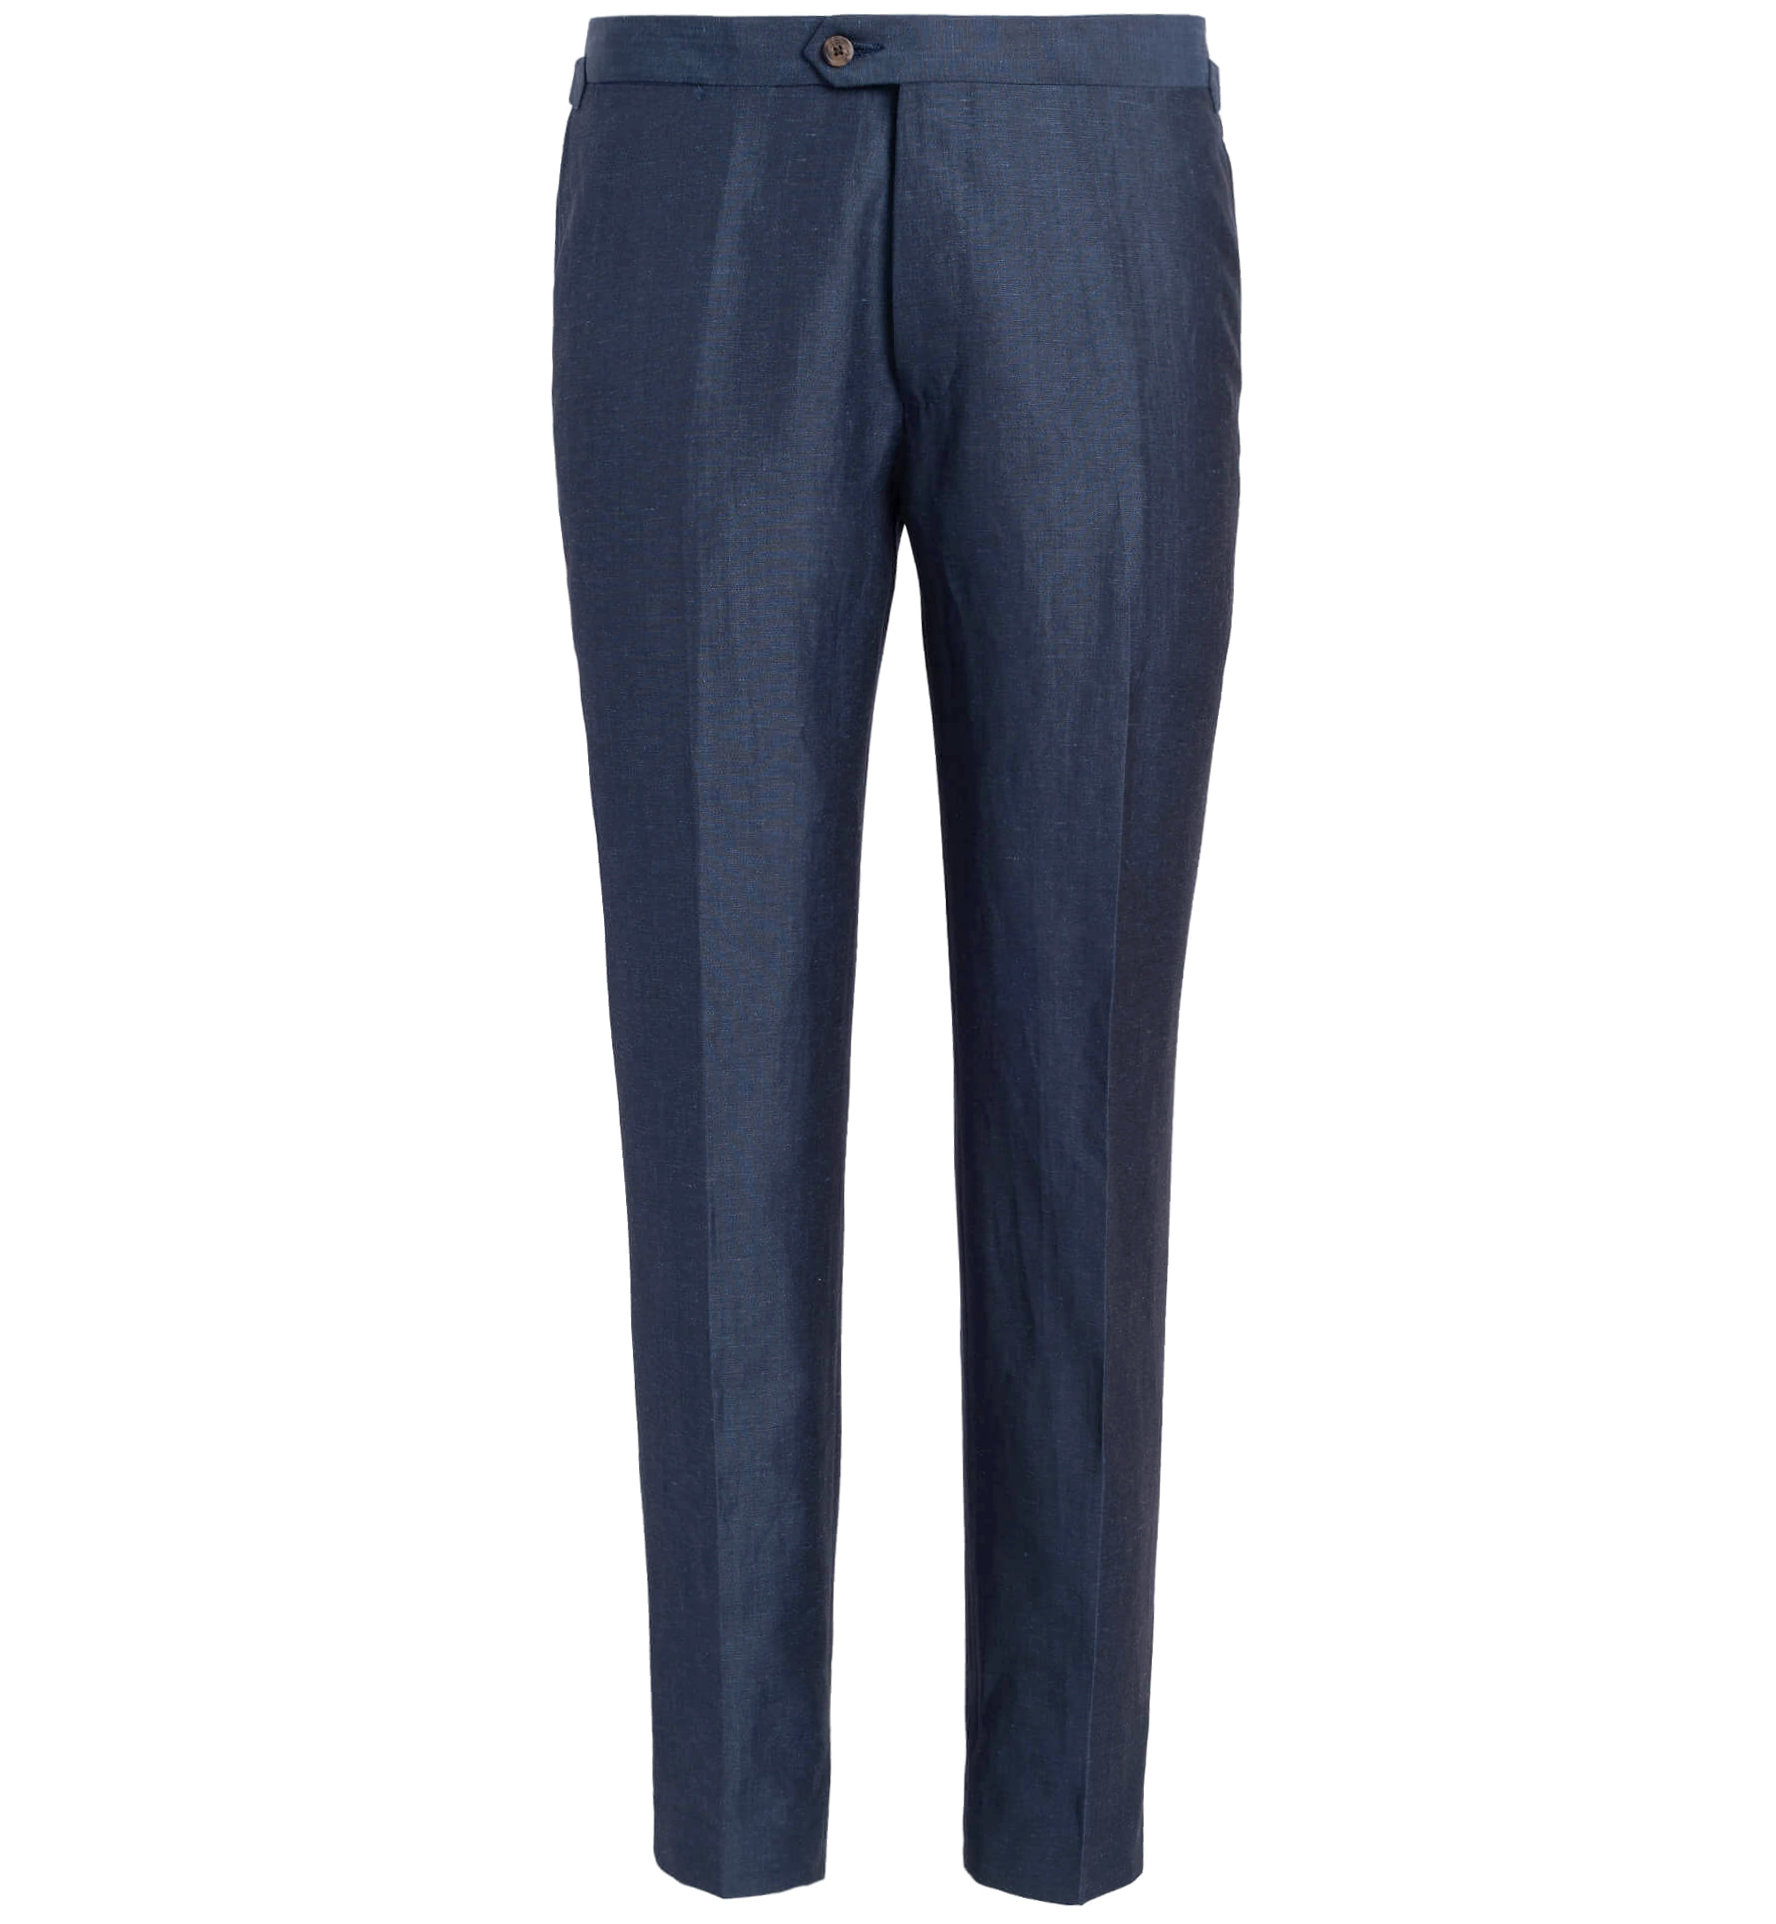 Zoom Image of Allen Blue Wool and Linen Trouser